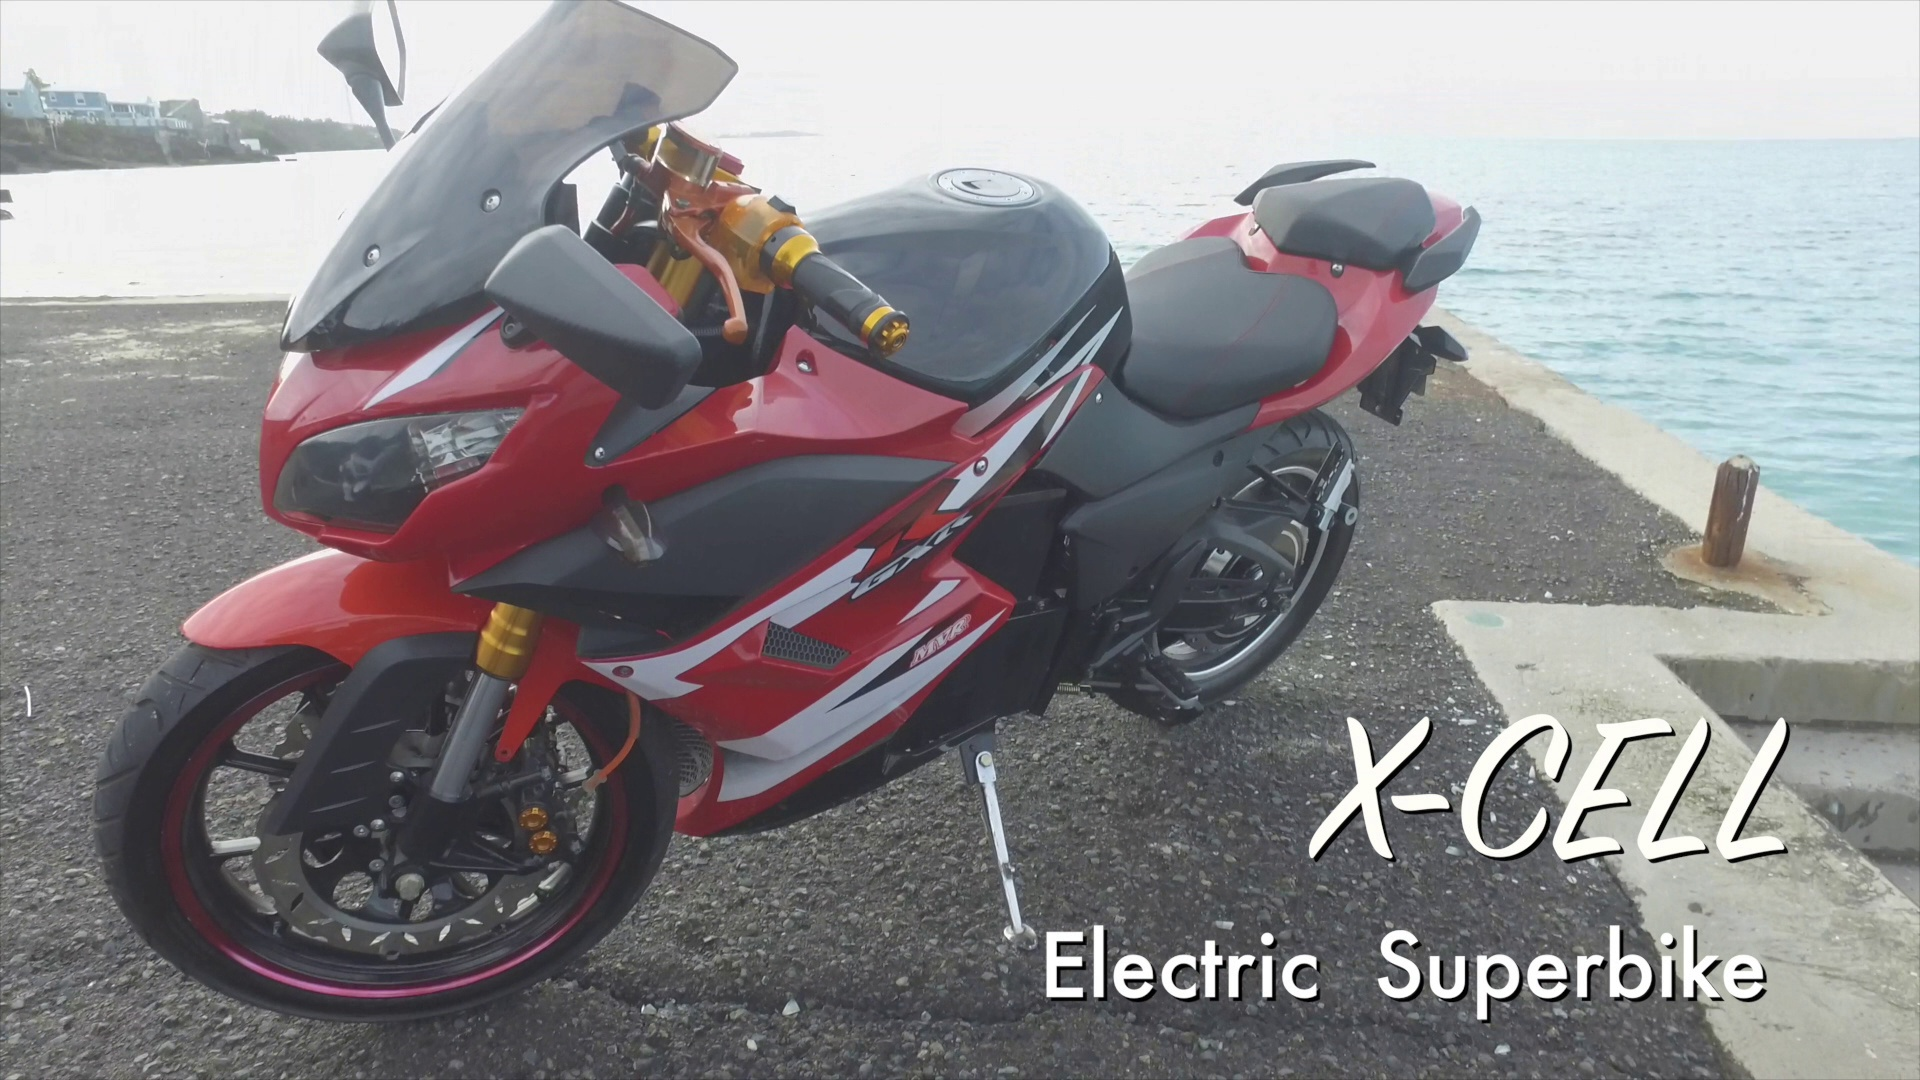 Stylish Affordable Electric Motorcycles